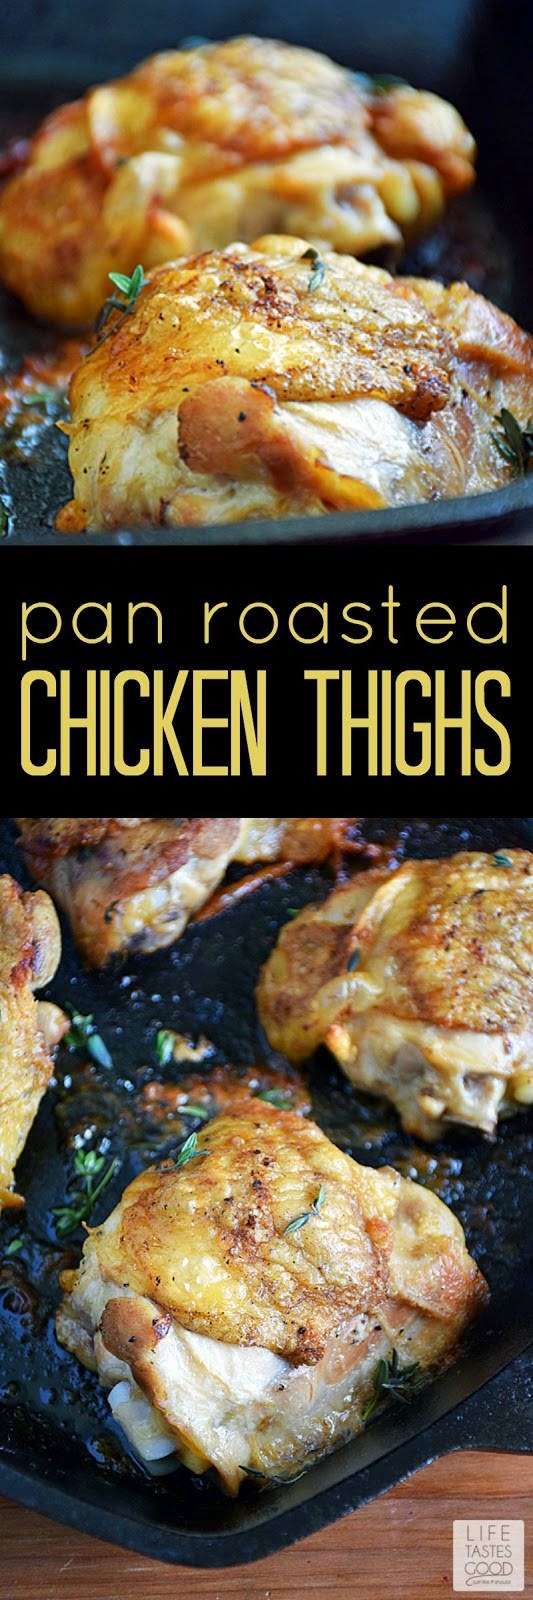 Pan Roasted Chicken Thighs | by Life Tastes Good make a simple dinner for any night of the week, but perfect for company too! They are budget-friendly, taste great, and easy to make! It doesn't get much better than this for an easy dinner!